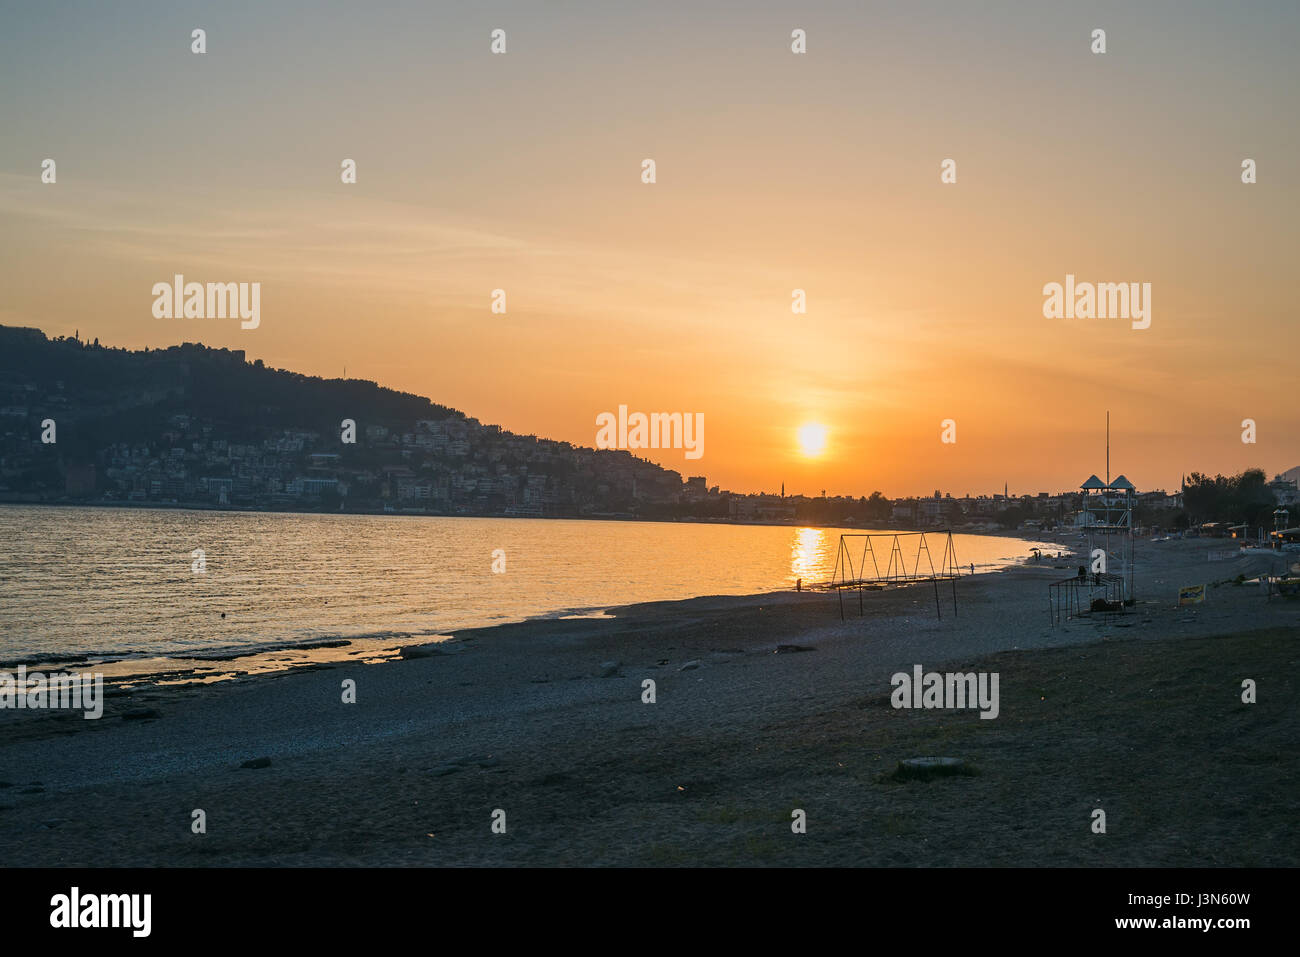 Sunset at the beach in Alanya, Turkey - Stock Image